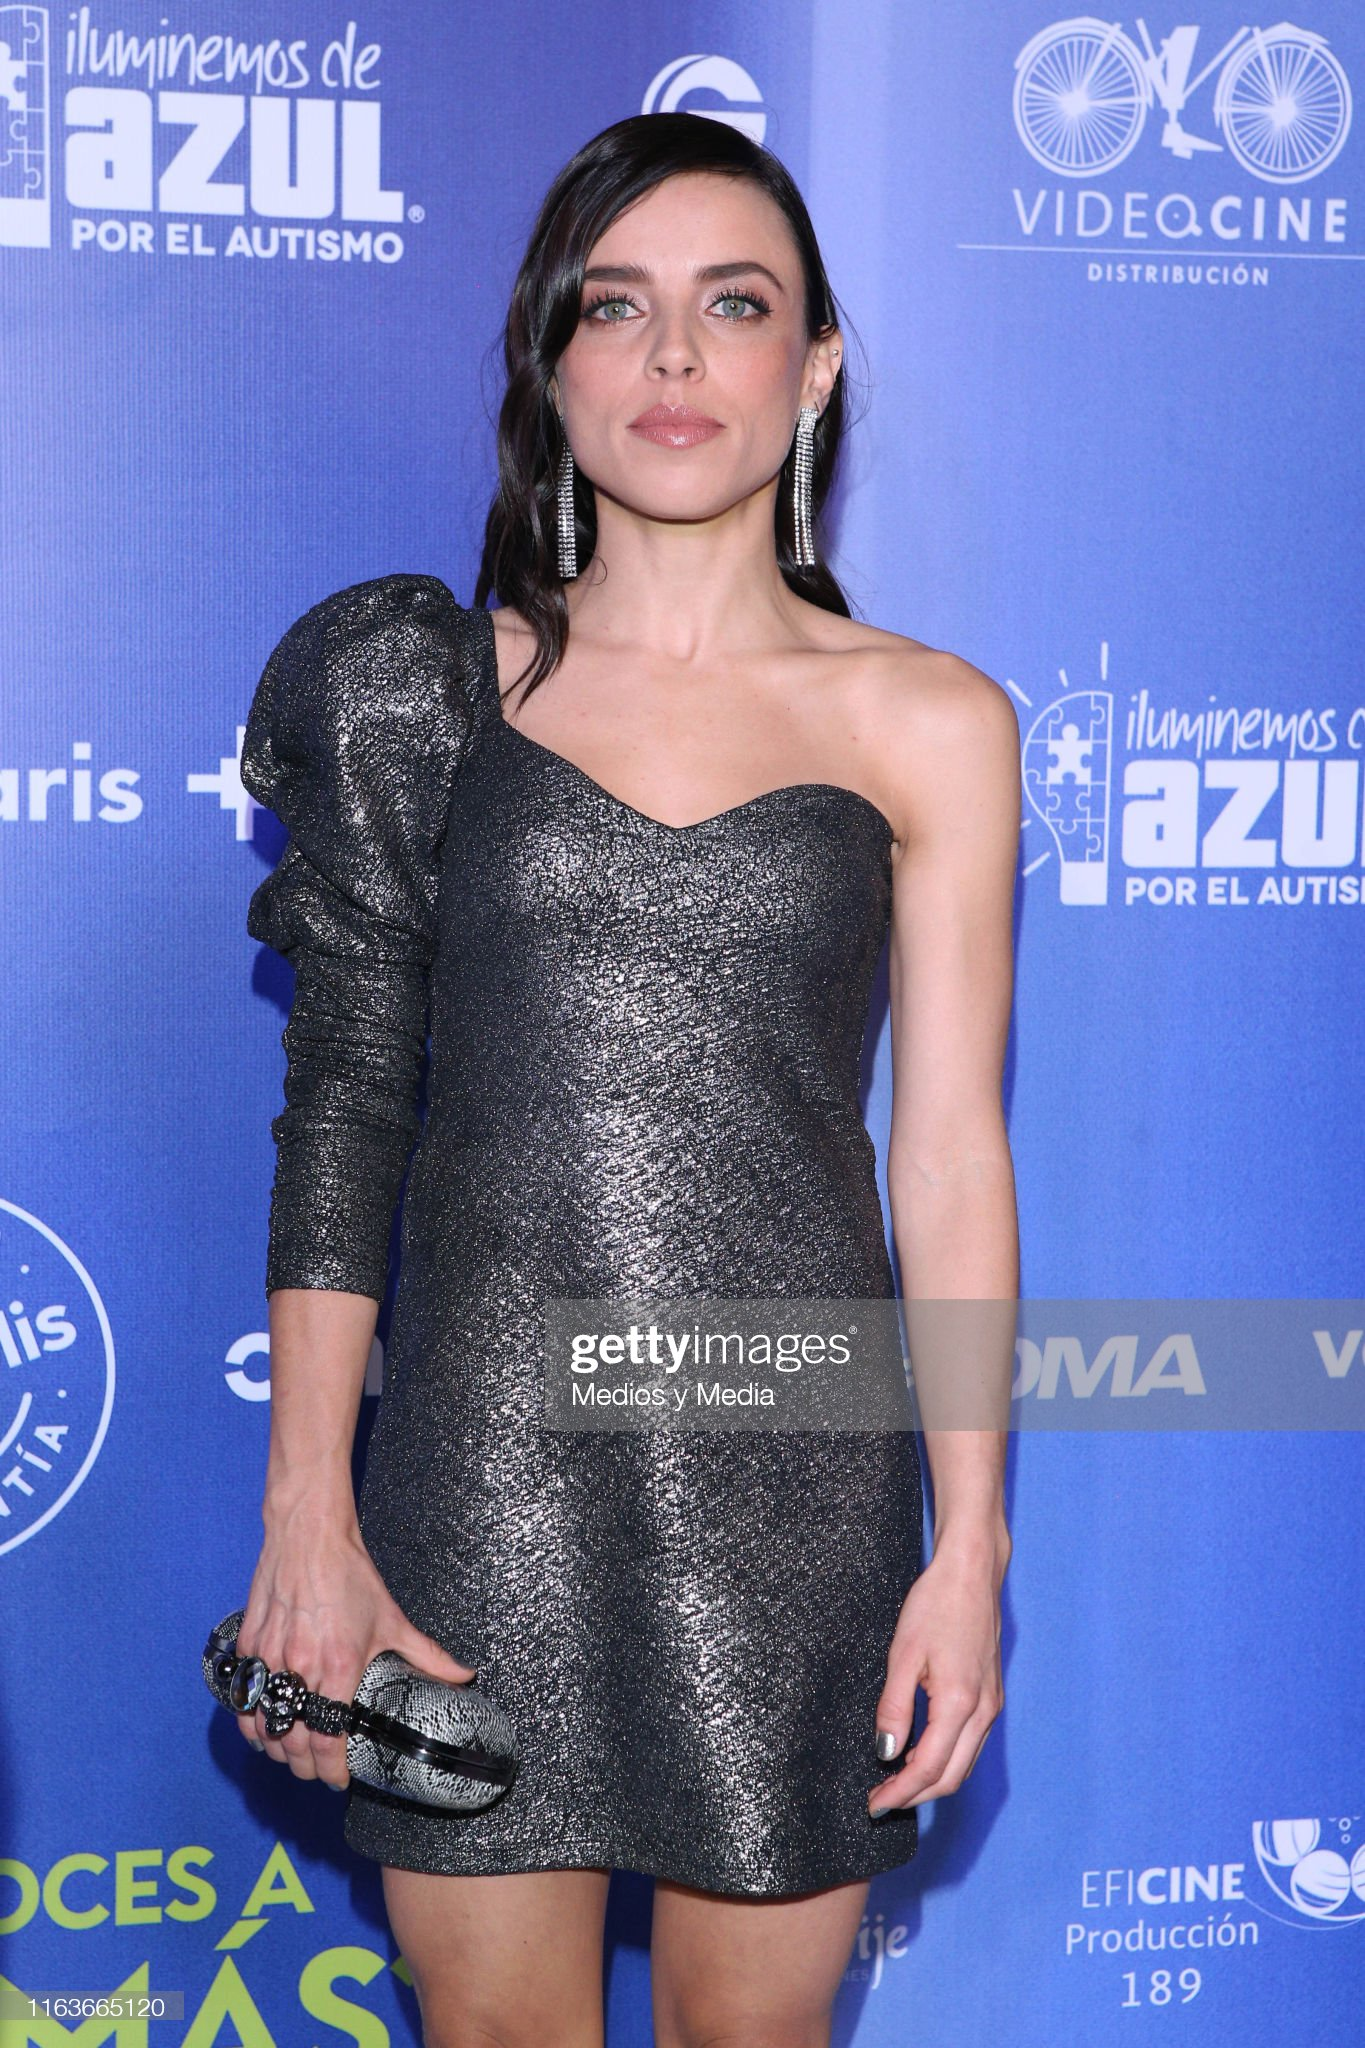 https://media.gettyimages.com/photos/marcela-guirado-poses-for-photos-during-conoces-a-tomas-red-carpet-at-picture-id1163665120?s=2048x2048